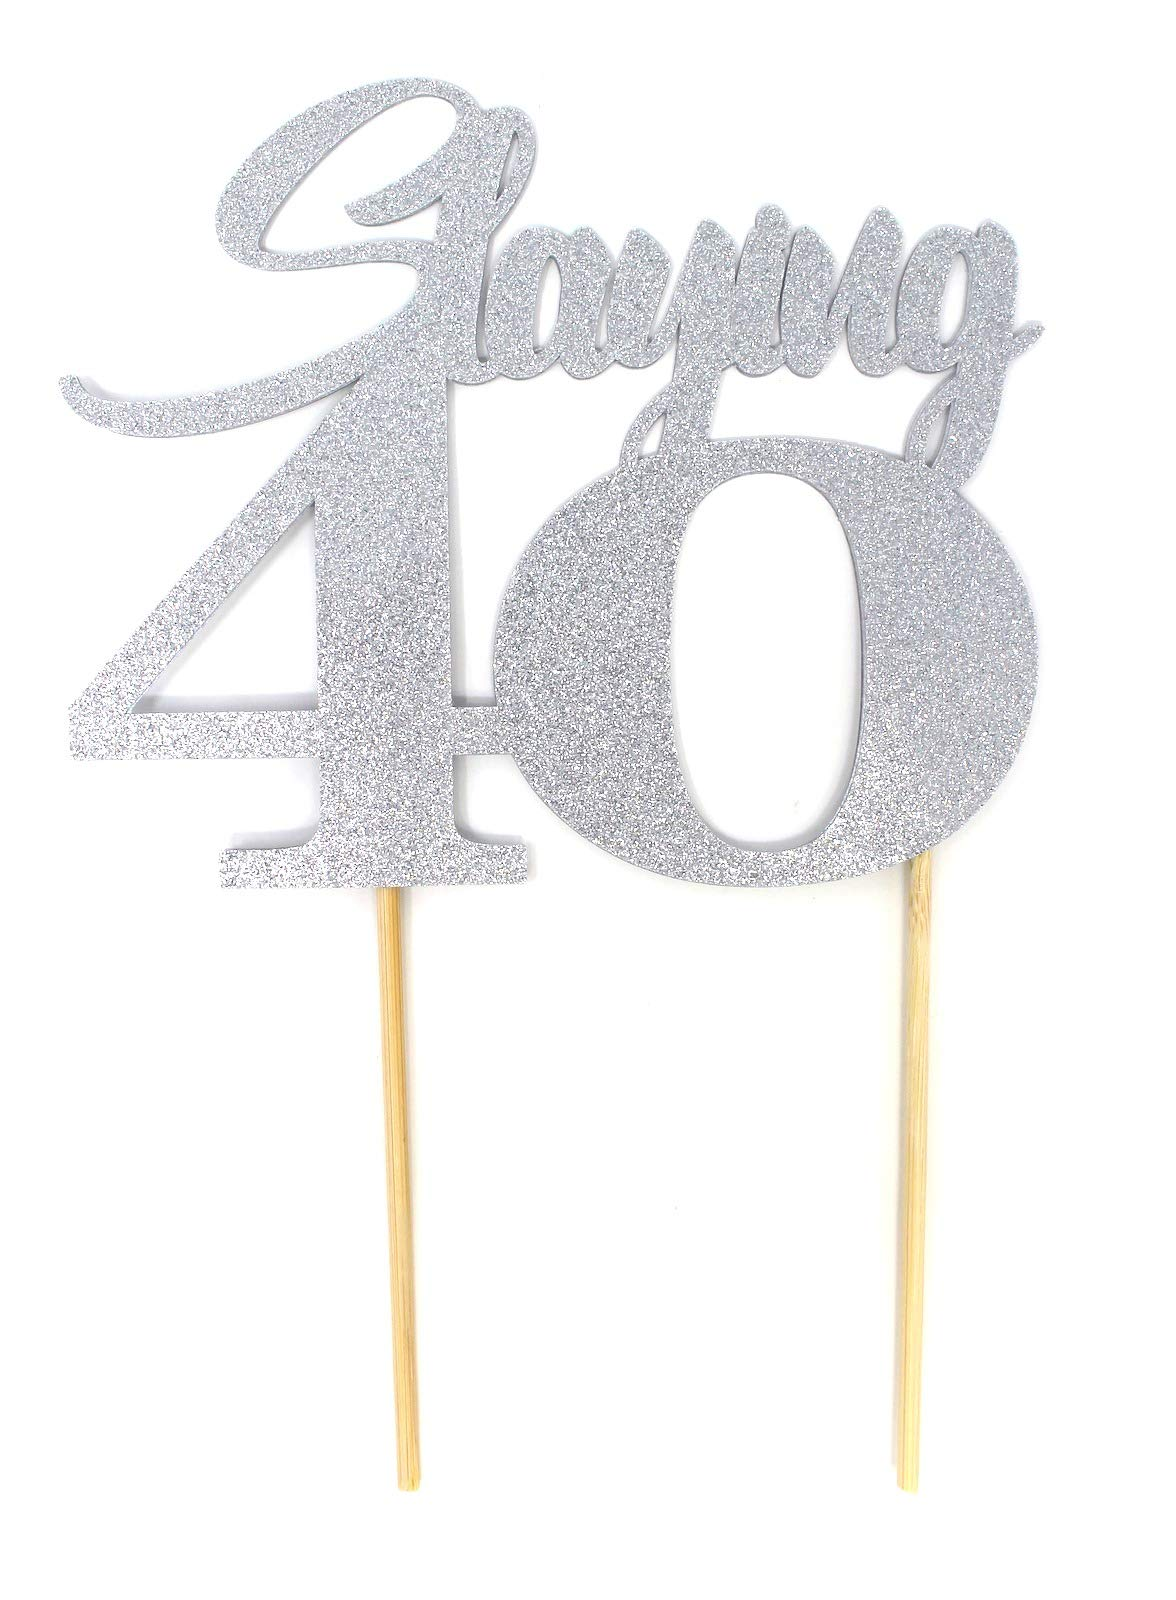 All About Details Slaying 40 Cake Topper, 1pc, 40th birthday, party decor (Silver)